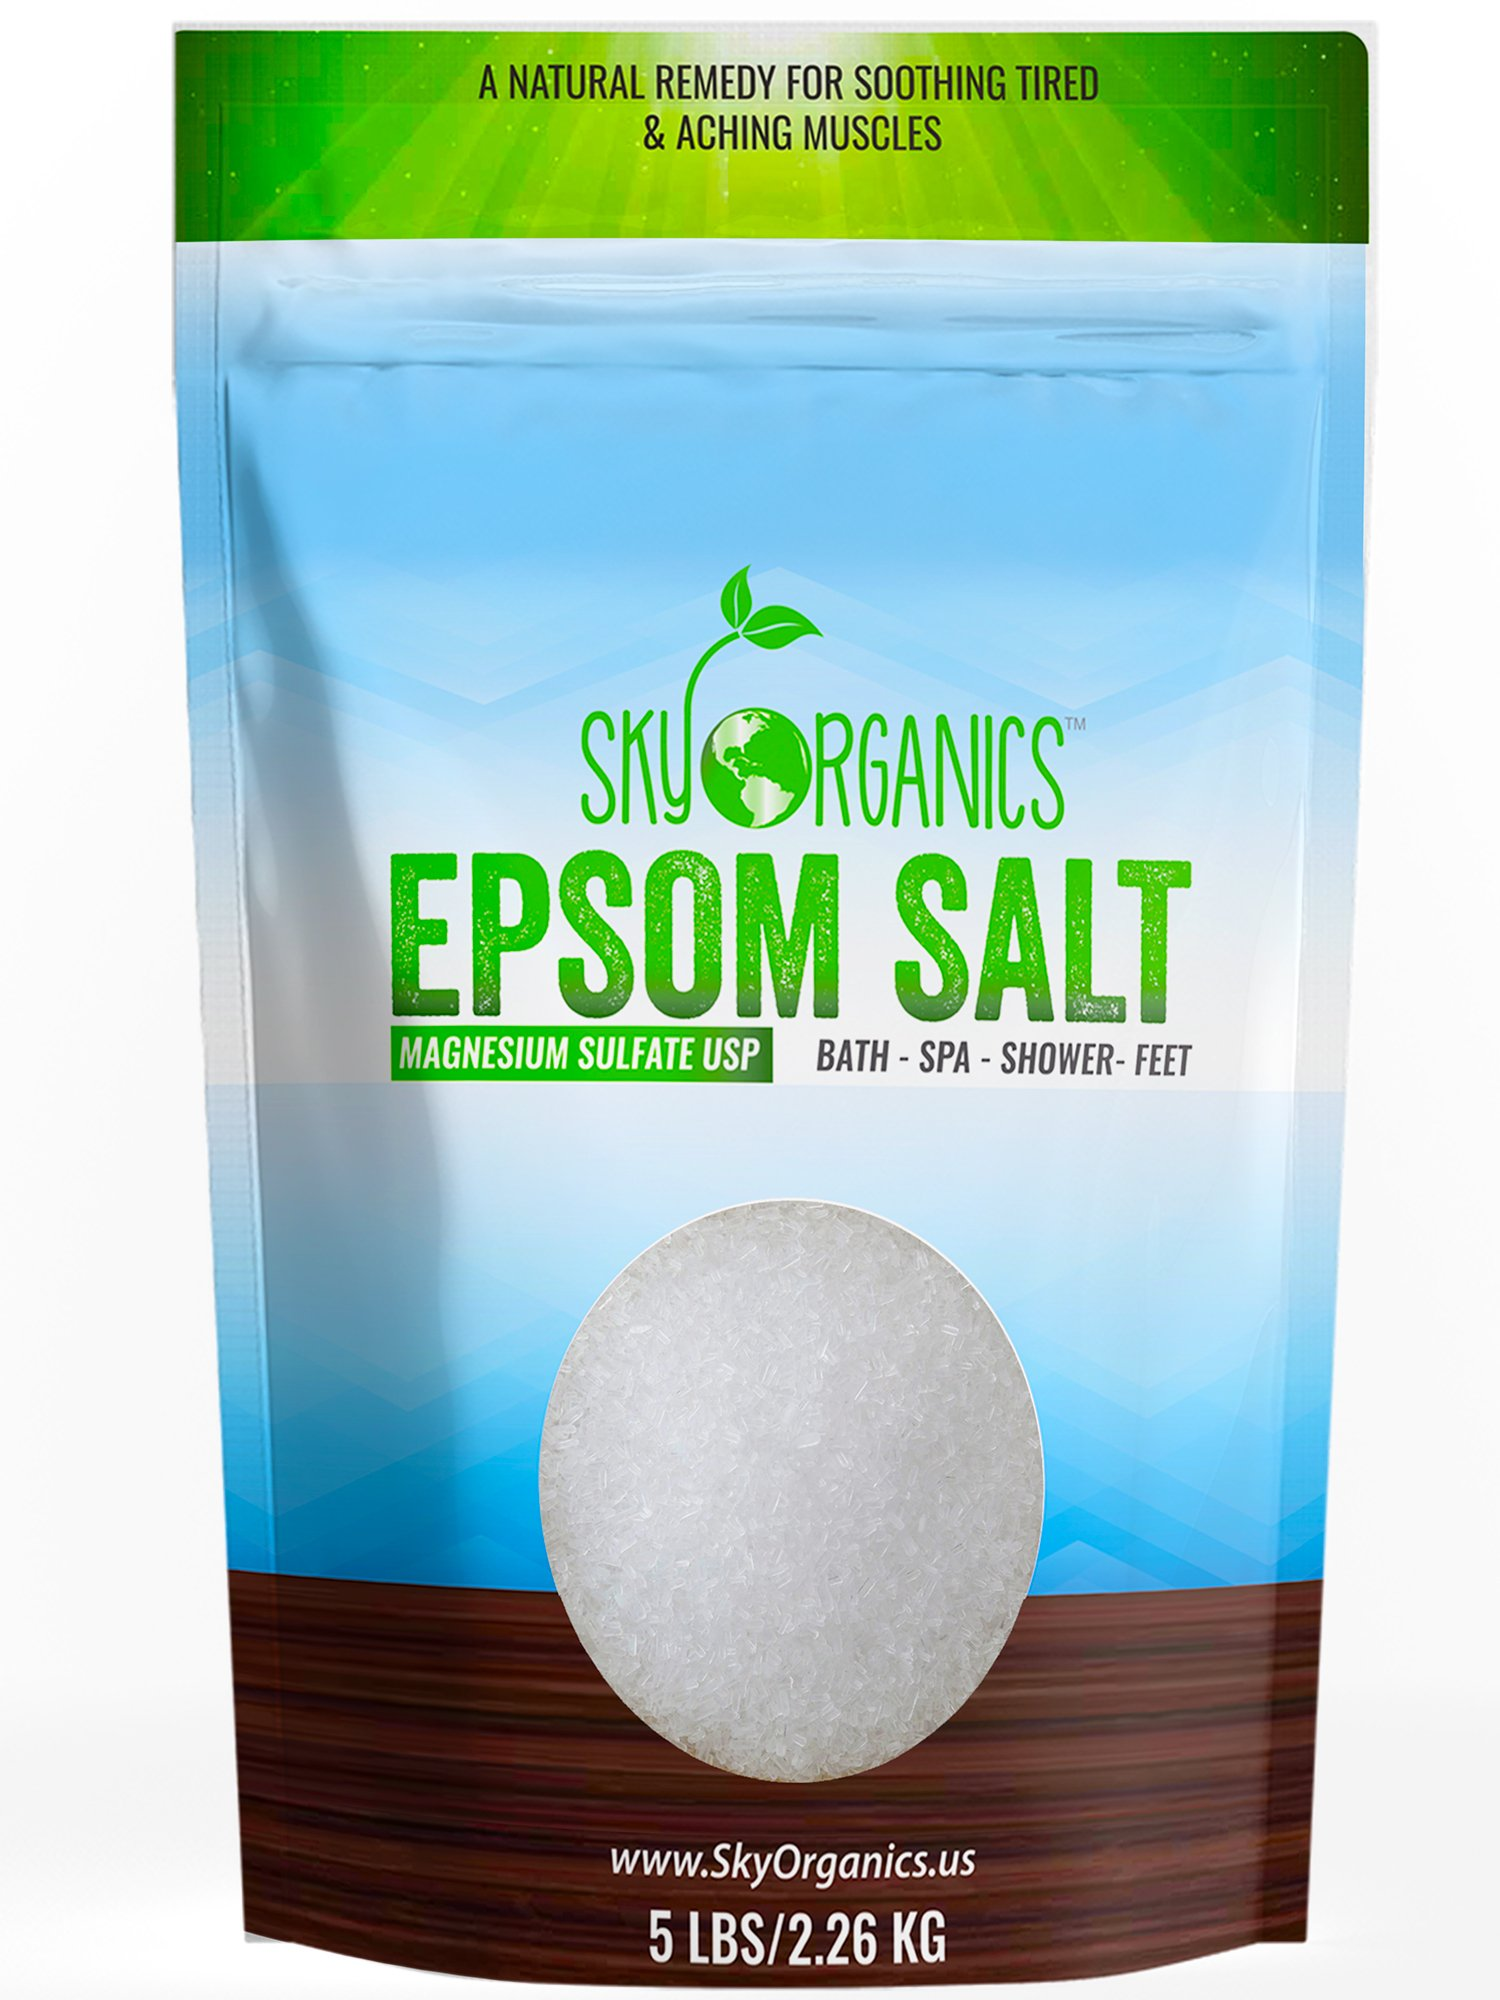 Epsom Salt By Sky Organics (5 LBS)- 100% Pure Magnesium Sulfate-Natural, USP Grade, Kosher, Non-GMO – Laxative, Muscle Tension Relief, Foot soak, Soothe Aches, Cleanses Skin. Made in USA